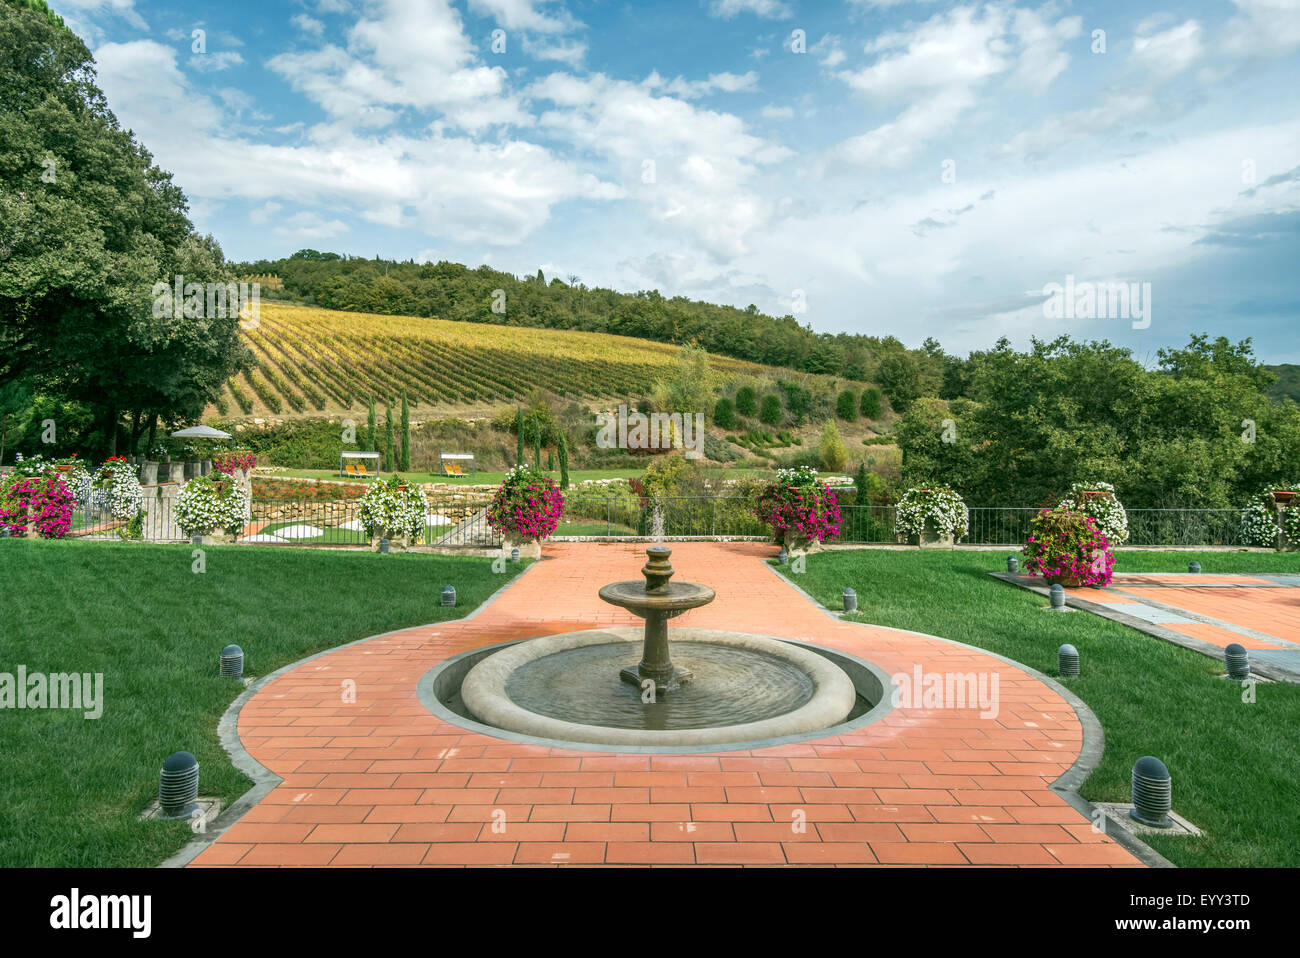 Fountain and walkway in landscaped grounds over rural fields, Radda in Chianti, Siena, Italy - Stock Image